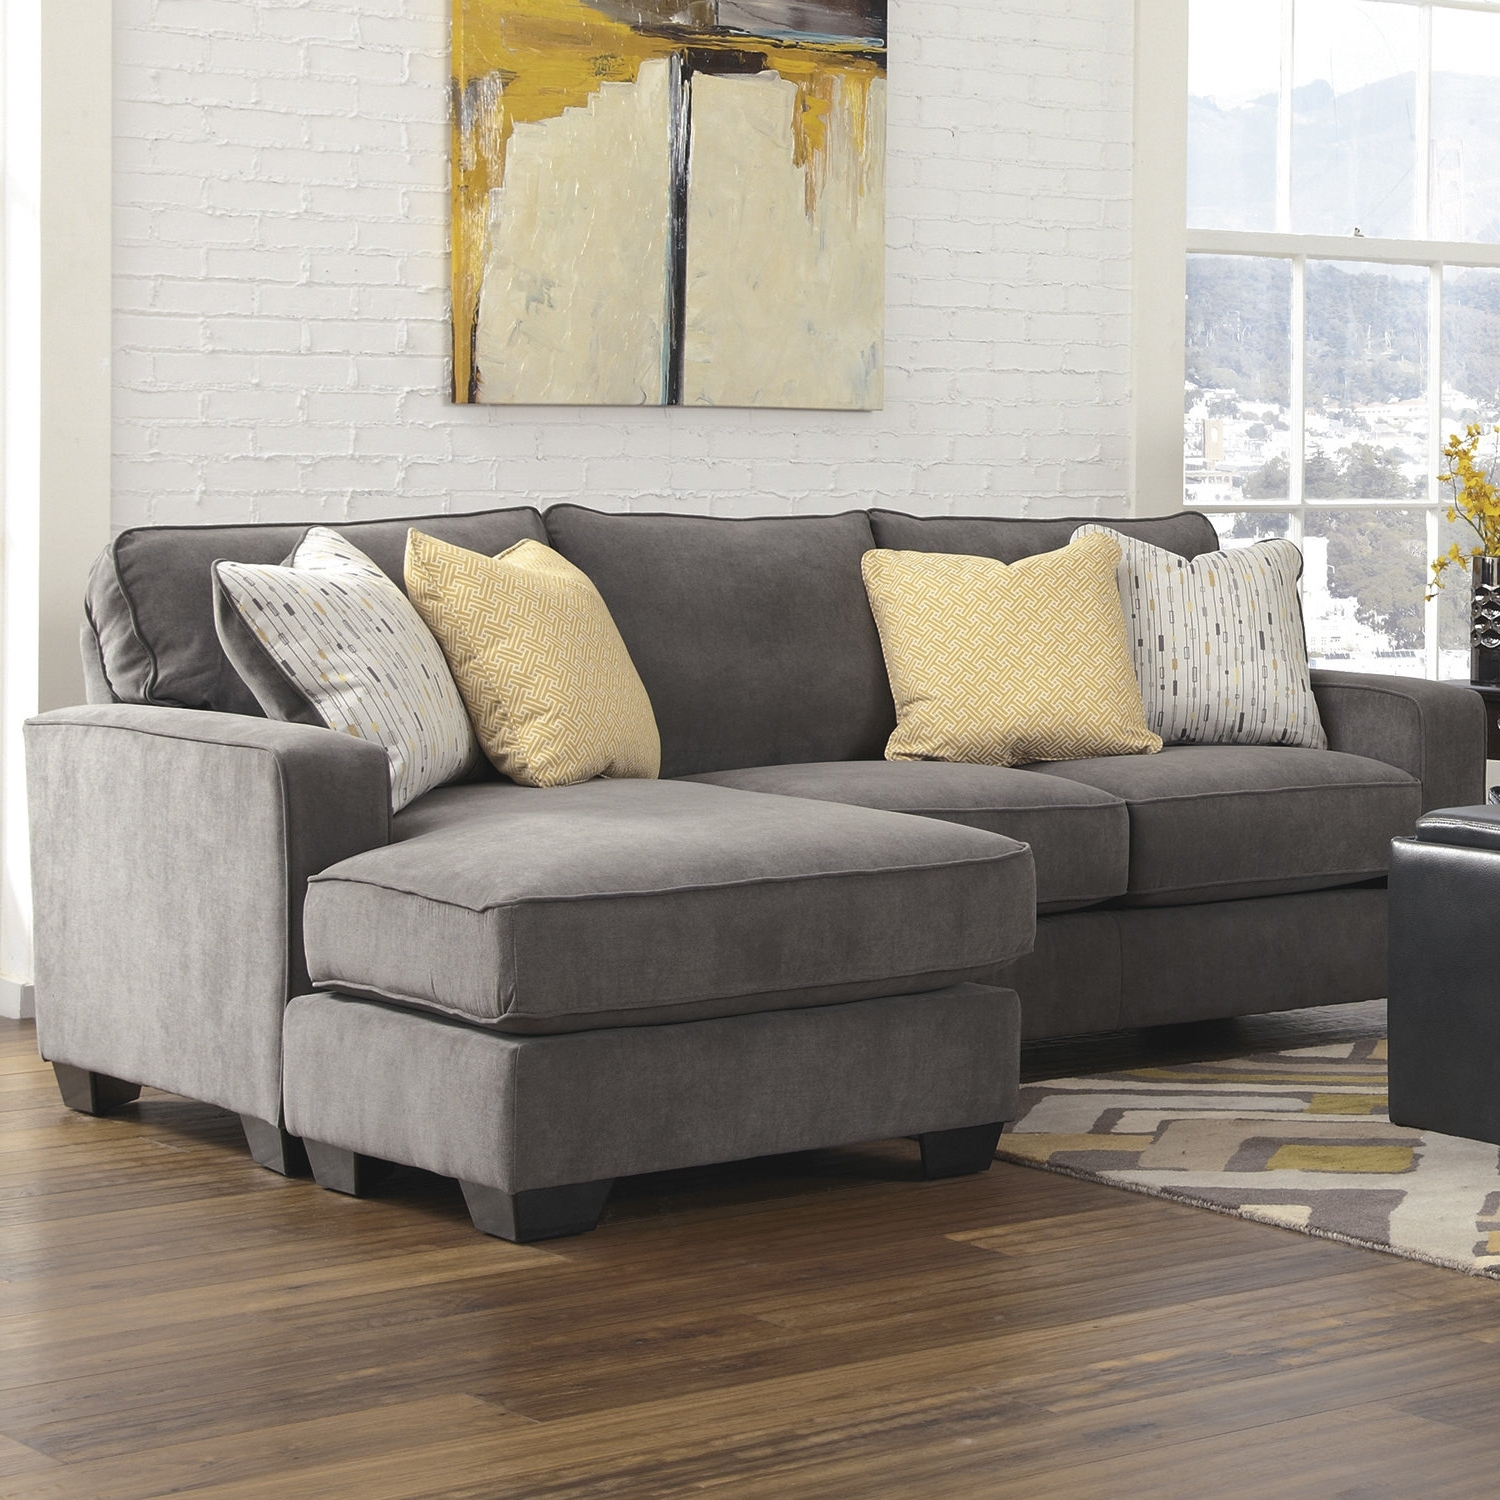 Most Current Small Sectional Sofas Throughout Sectional Sofas (View 8 of 20)